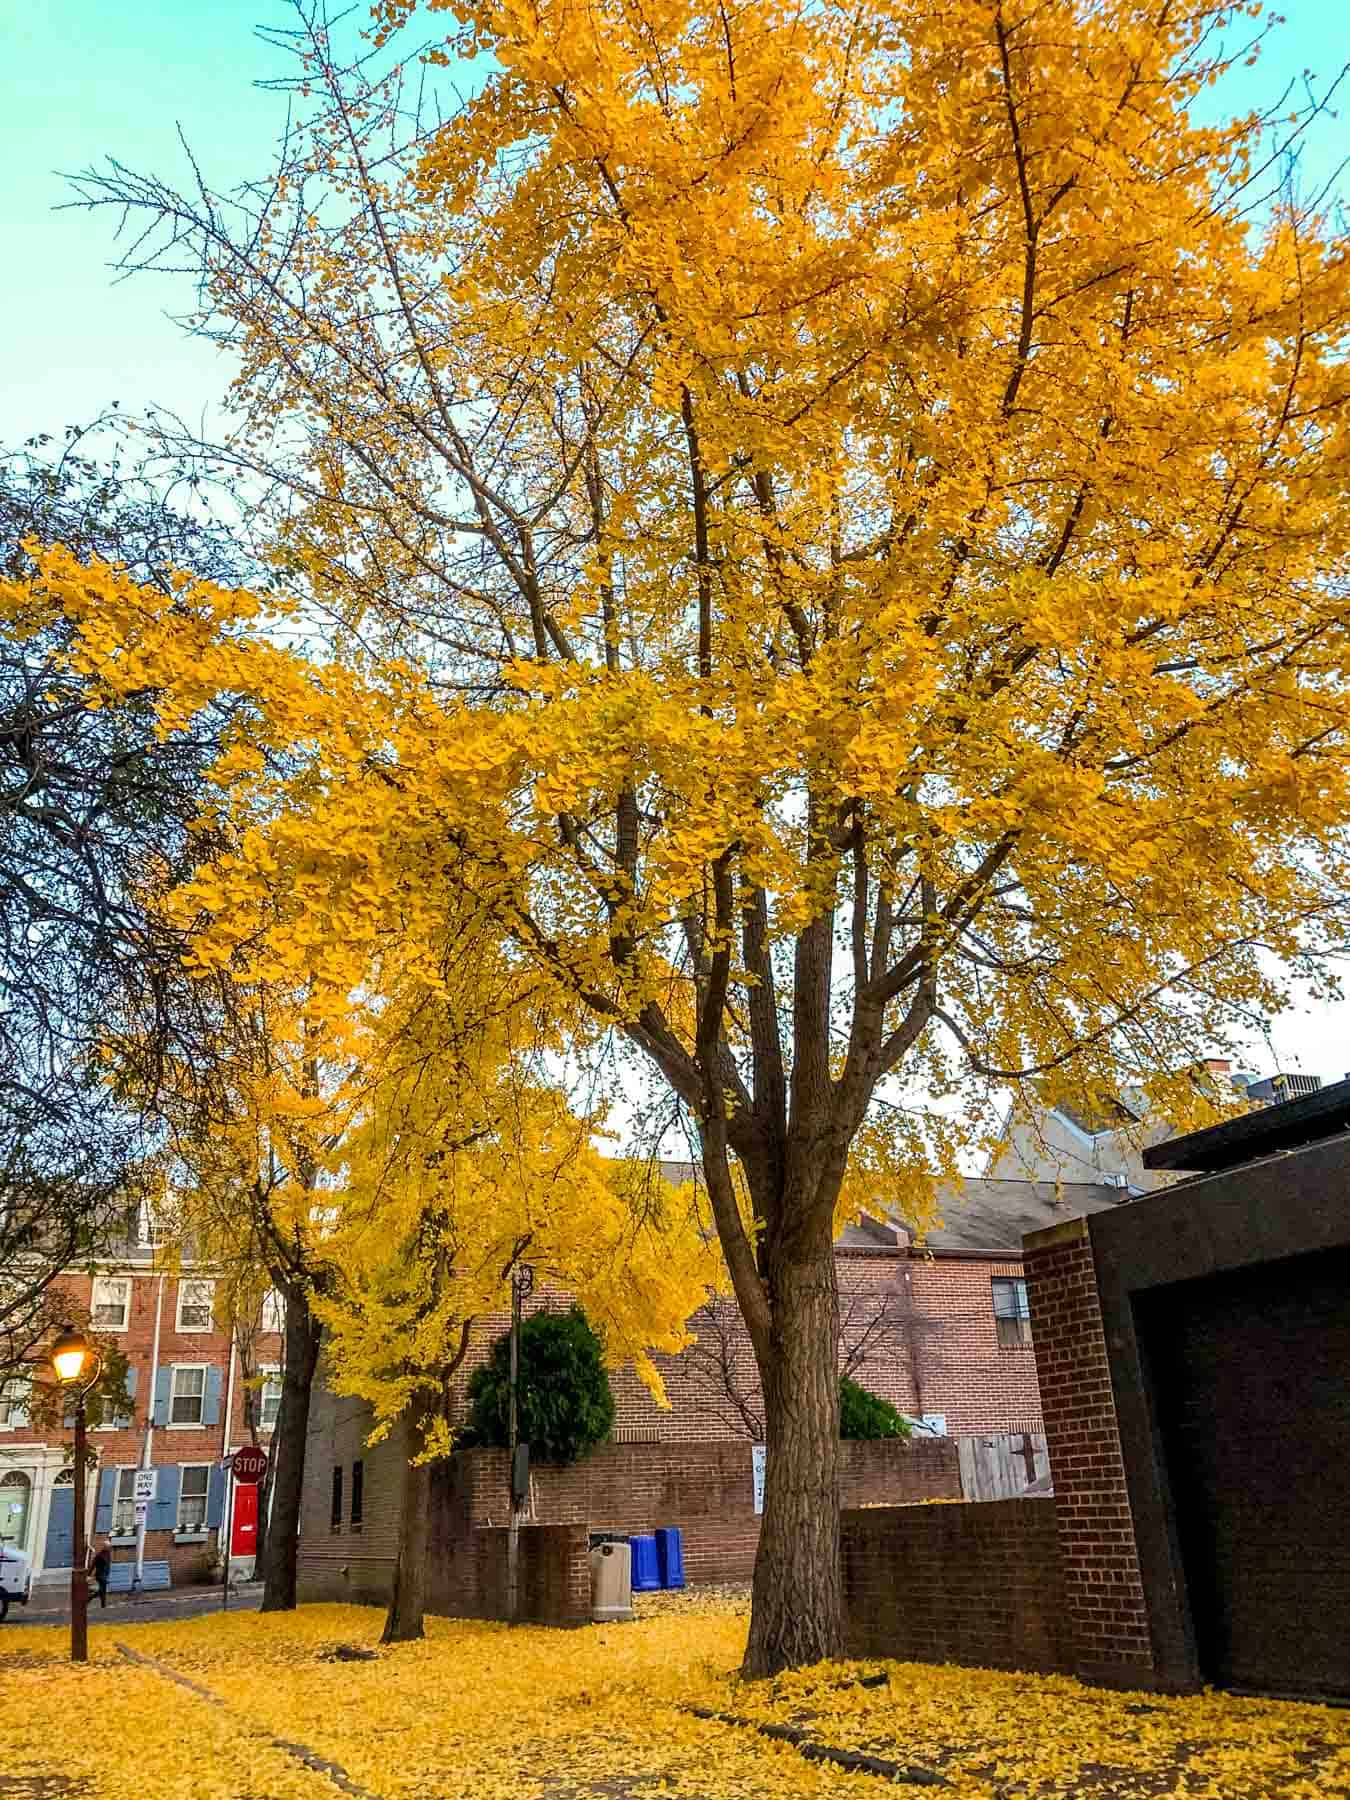 Bright yellow tree on a street covered with yellow leaves